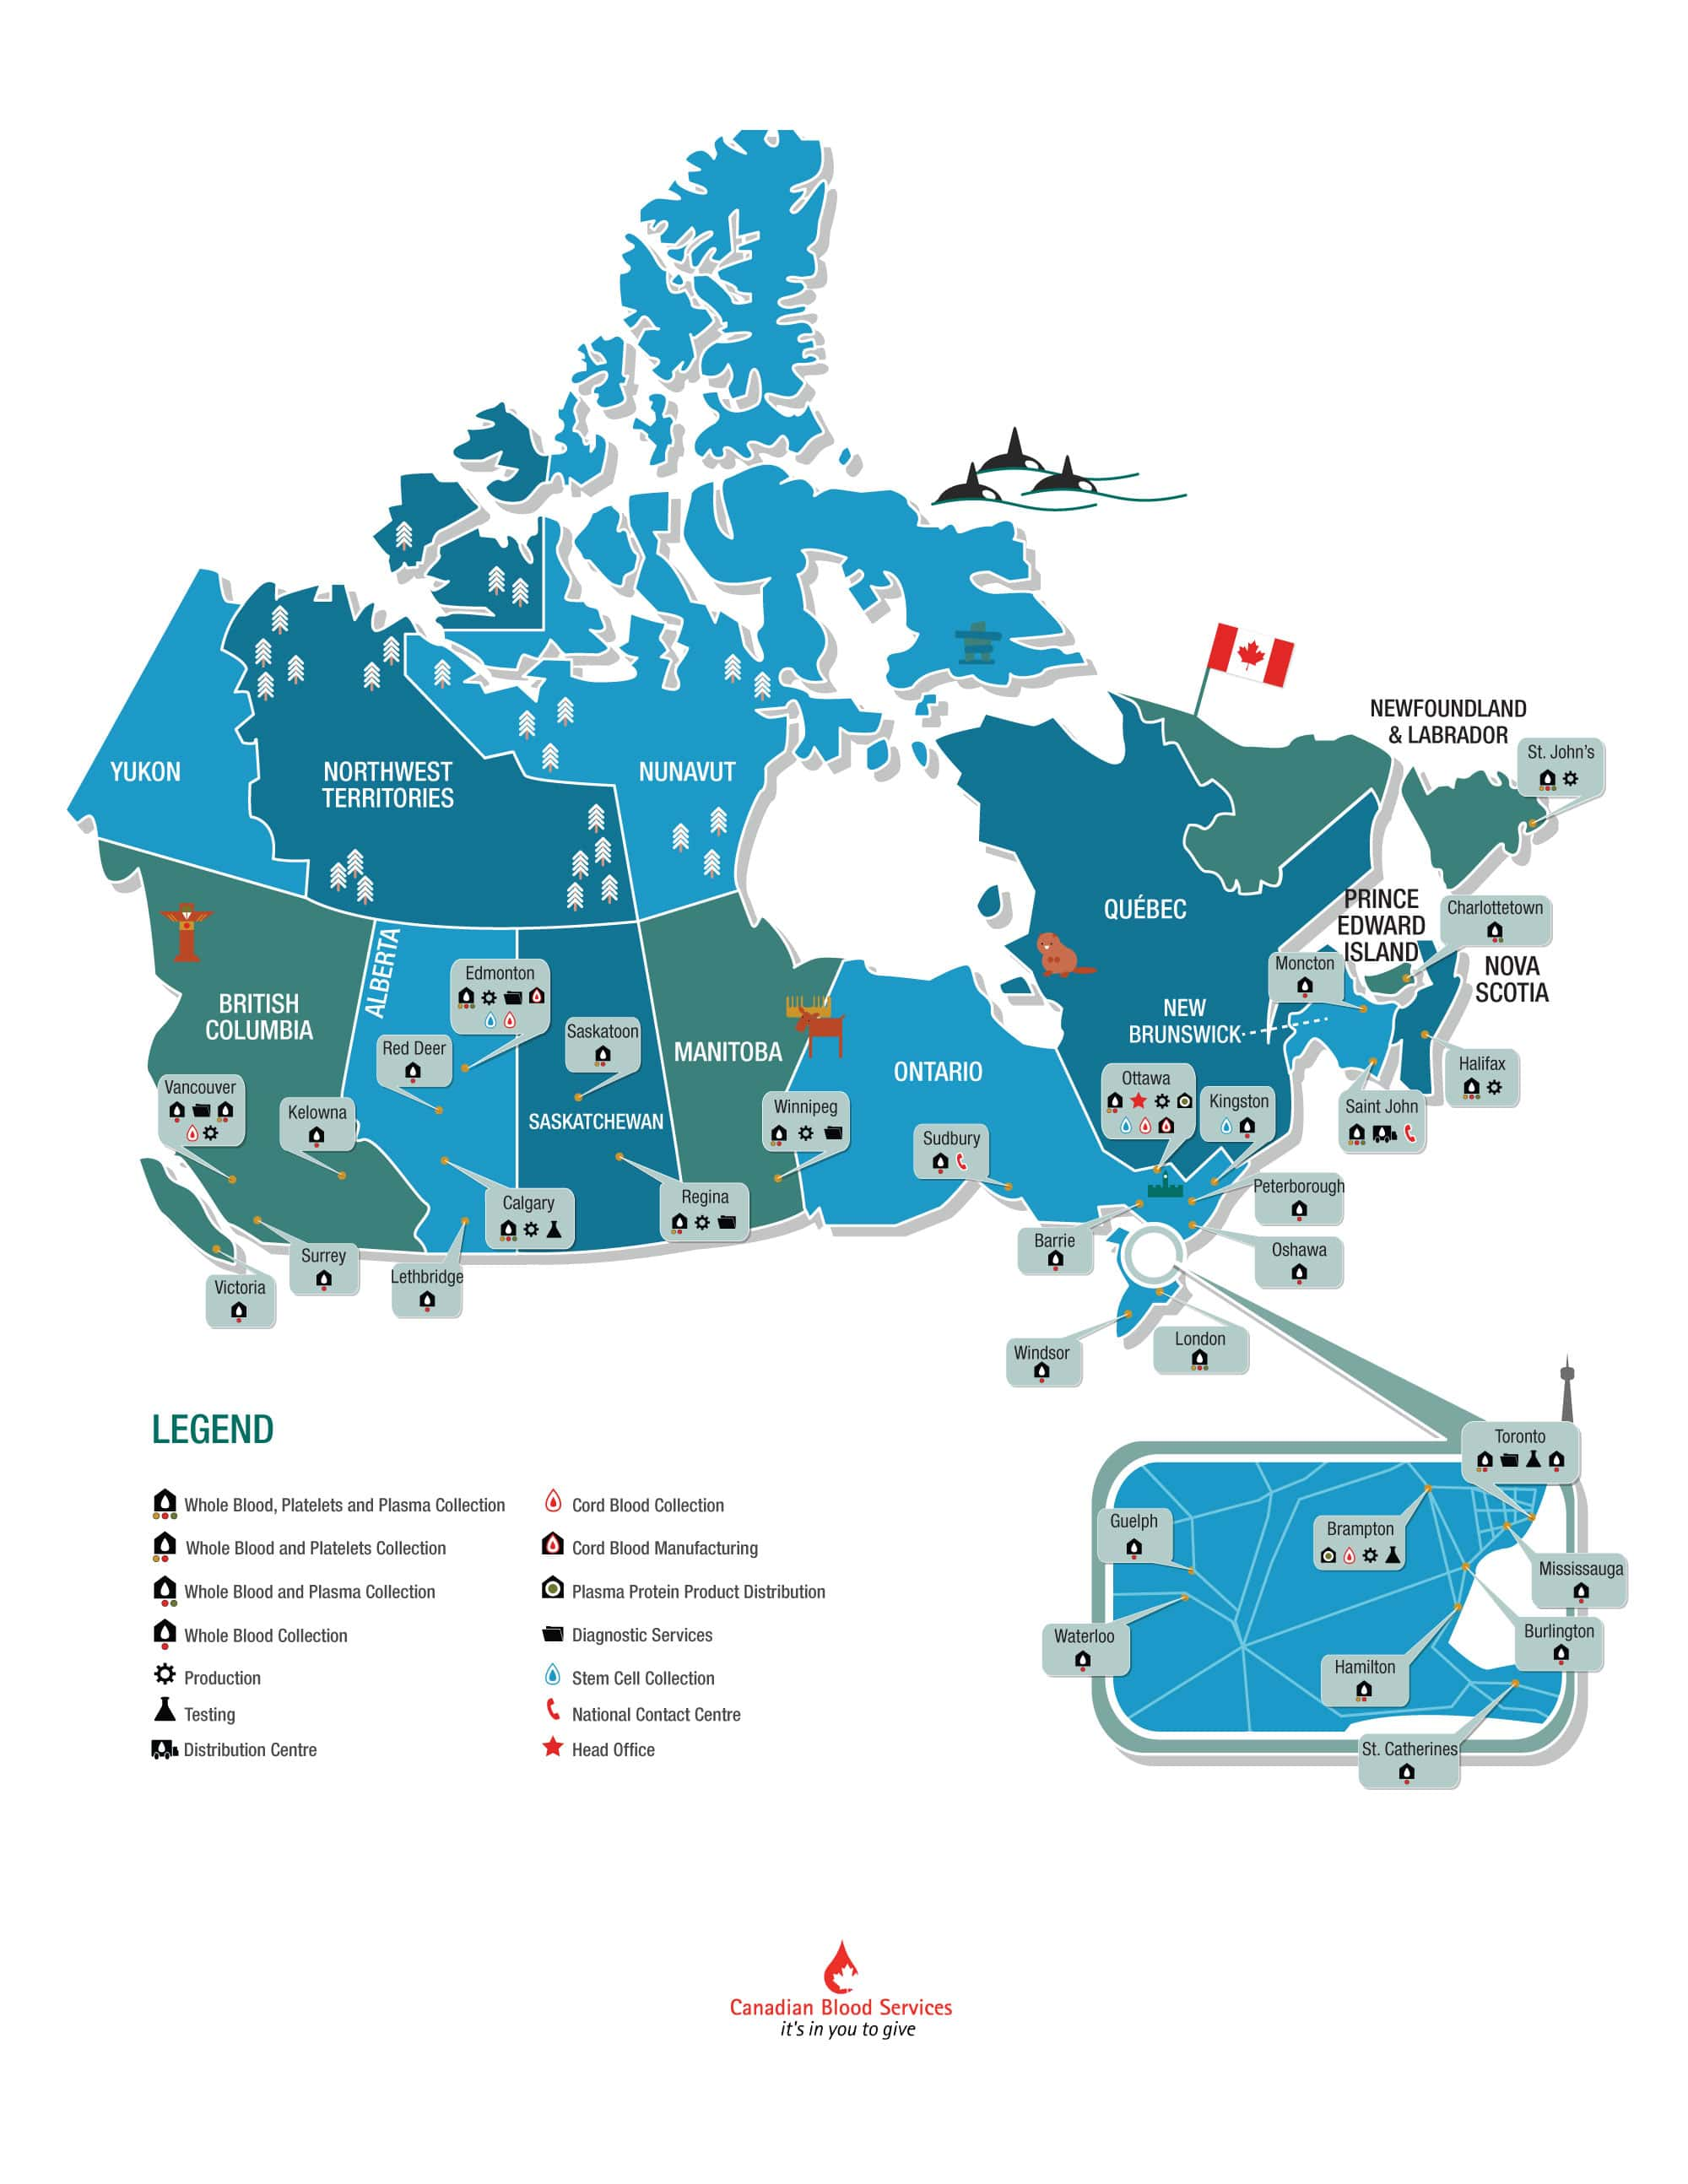 operations map with special Canada 150 graphics of popular Canadiana. Illustrations of things like orca whales, a totem pole, the parliament buildings, and of course a beaver